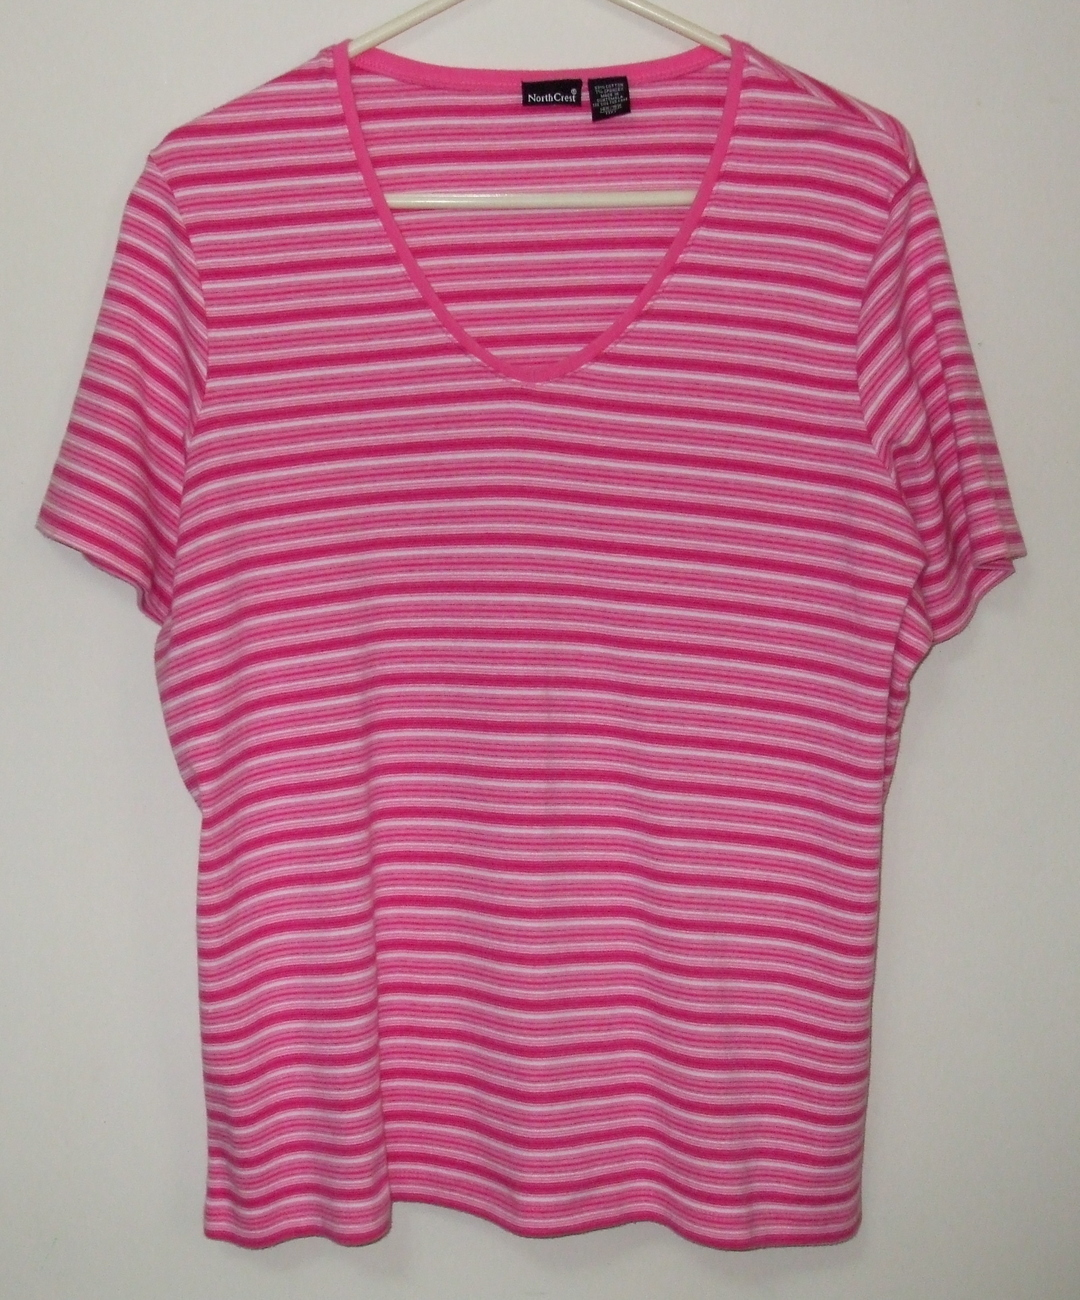 Womens North Crest Pink White Short Sleeve Stripe Top Size 1X